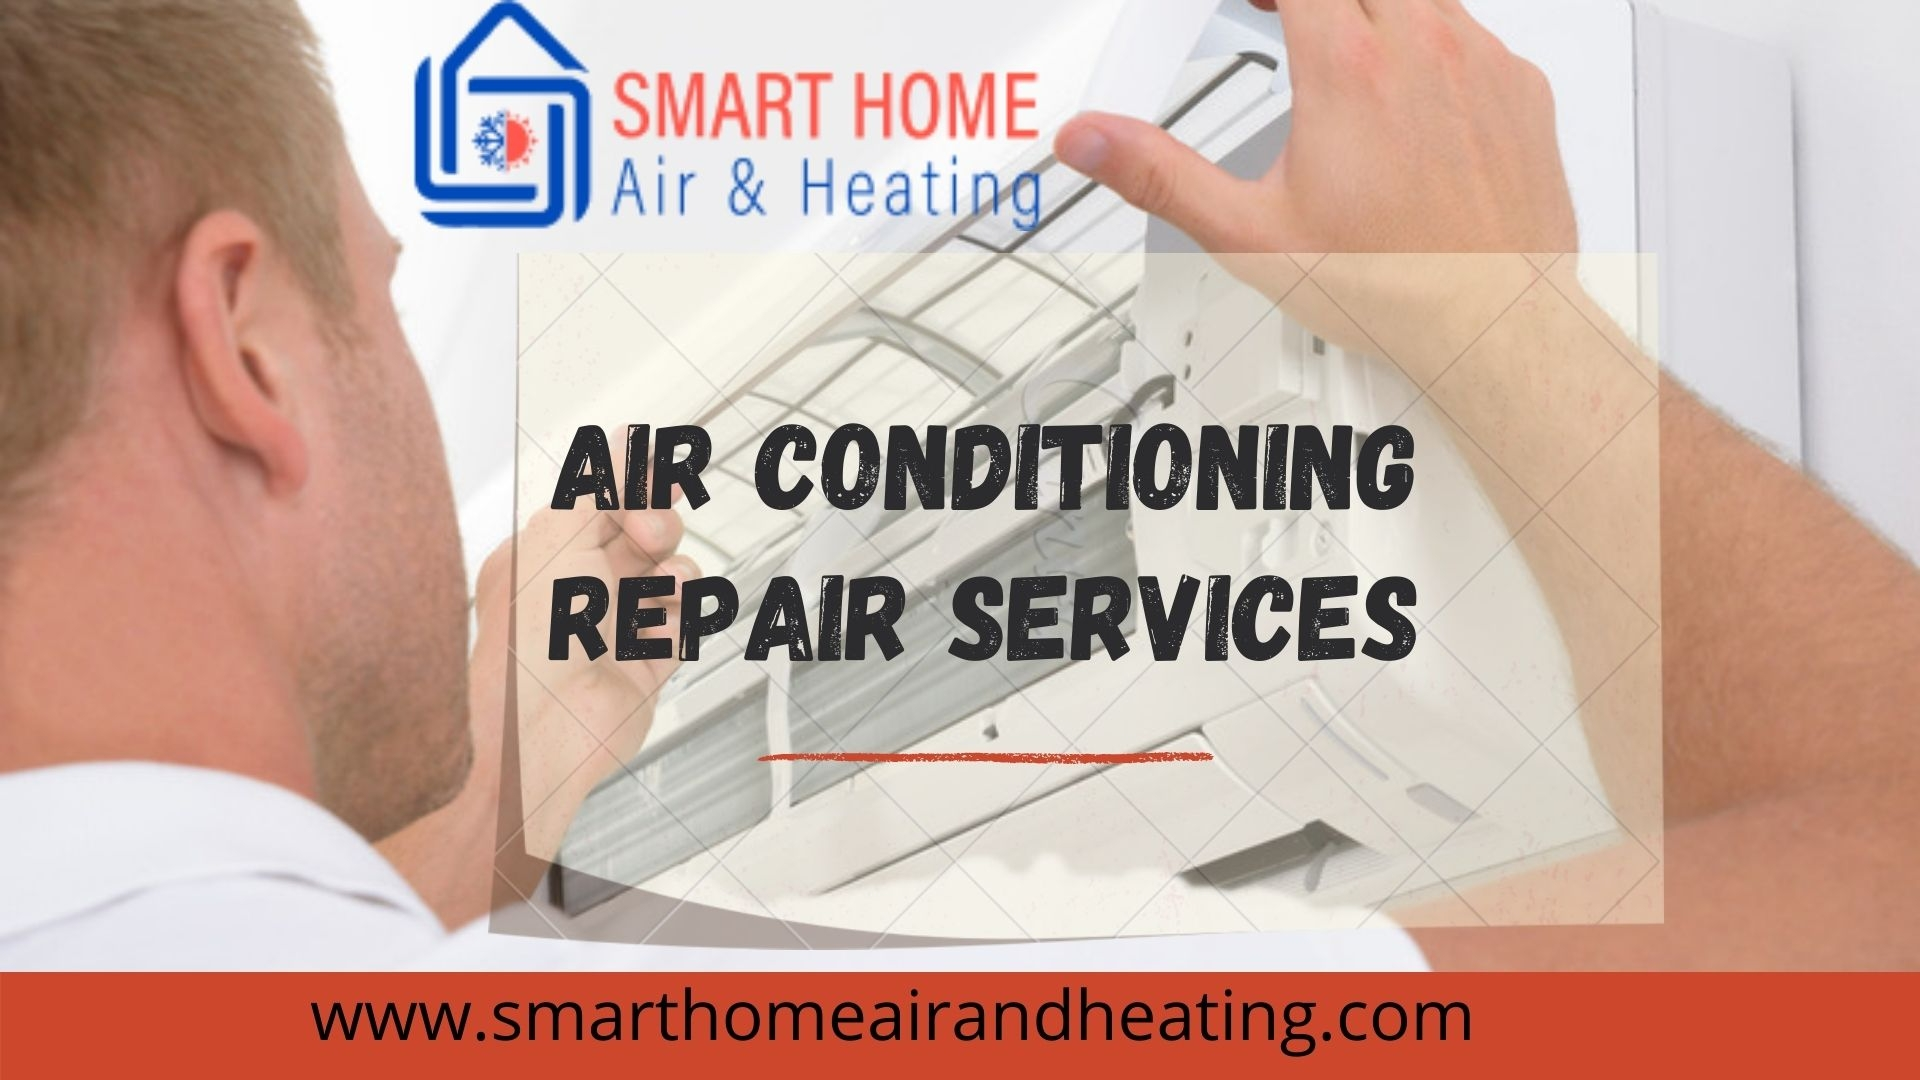 Smart Home Air and Heating (@smarthomeairandheating) Cover Image